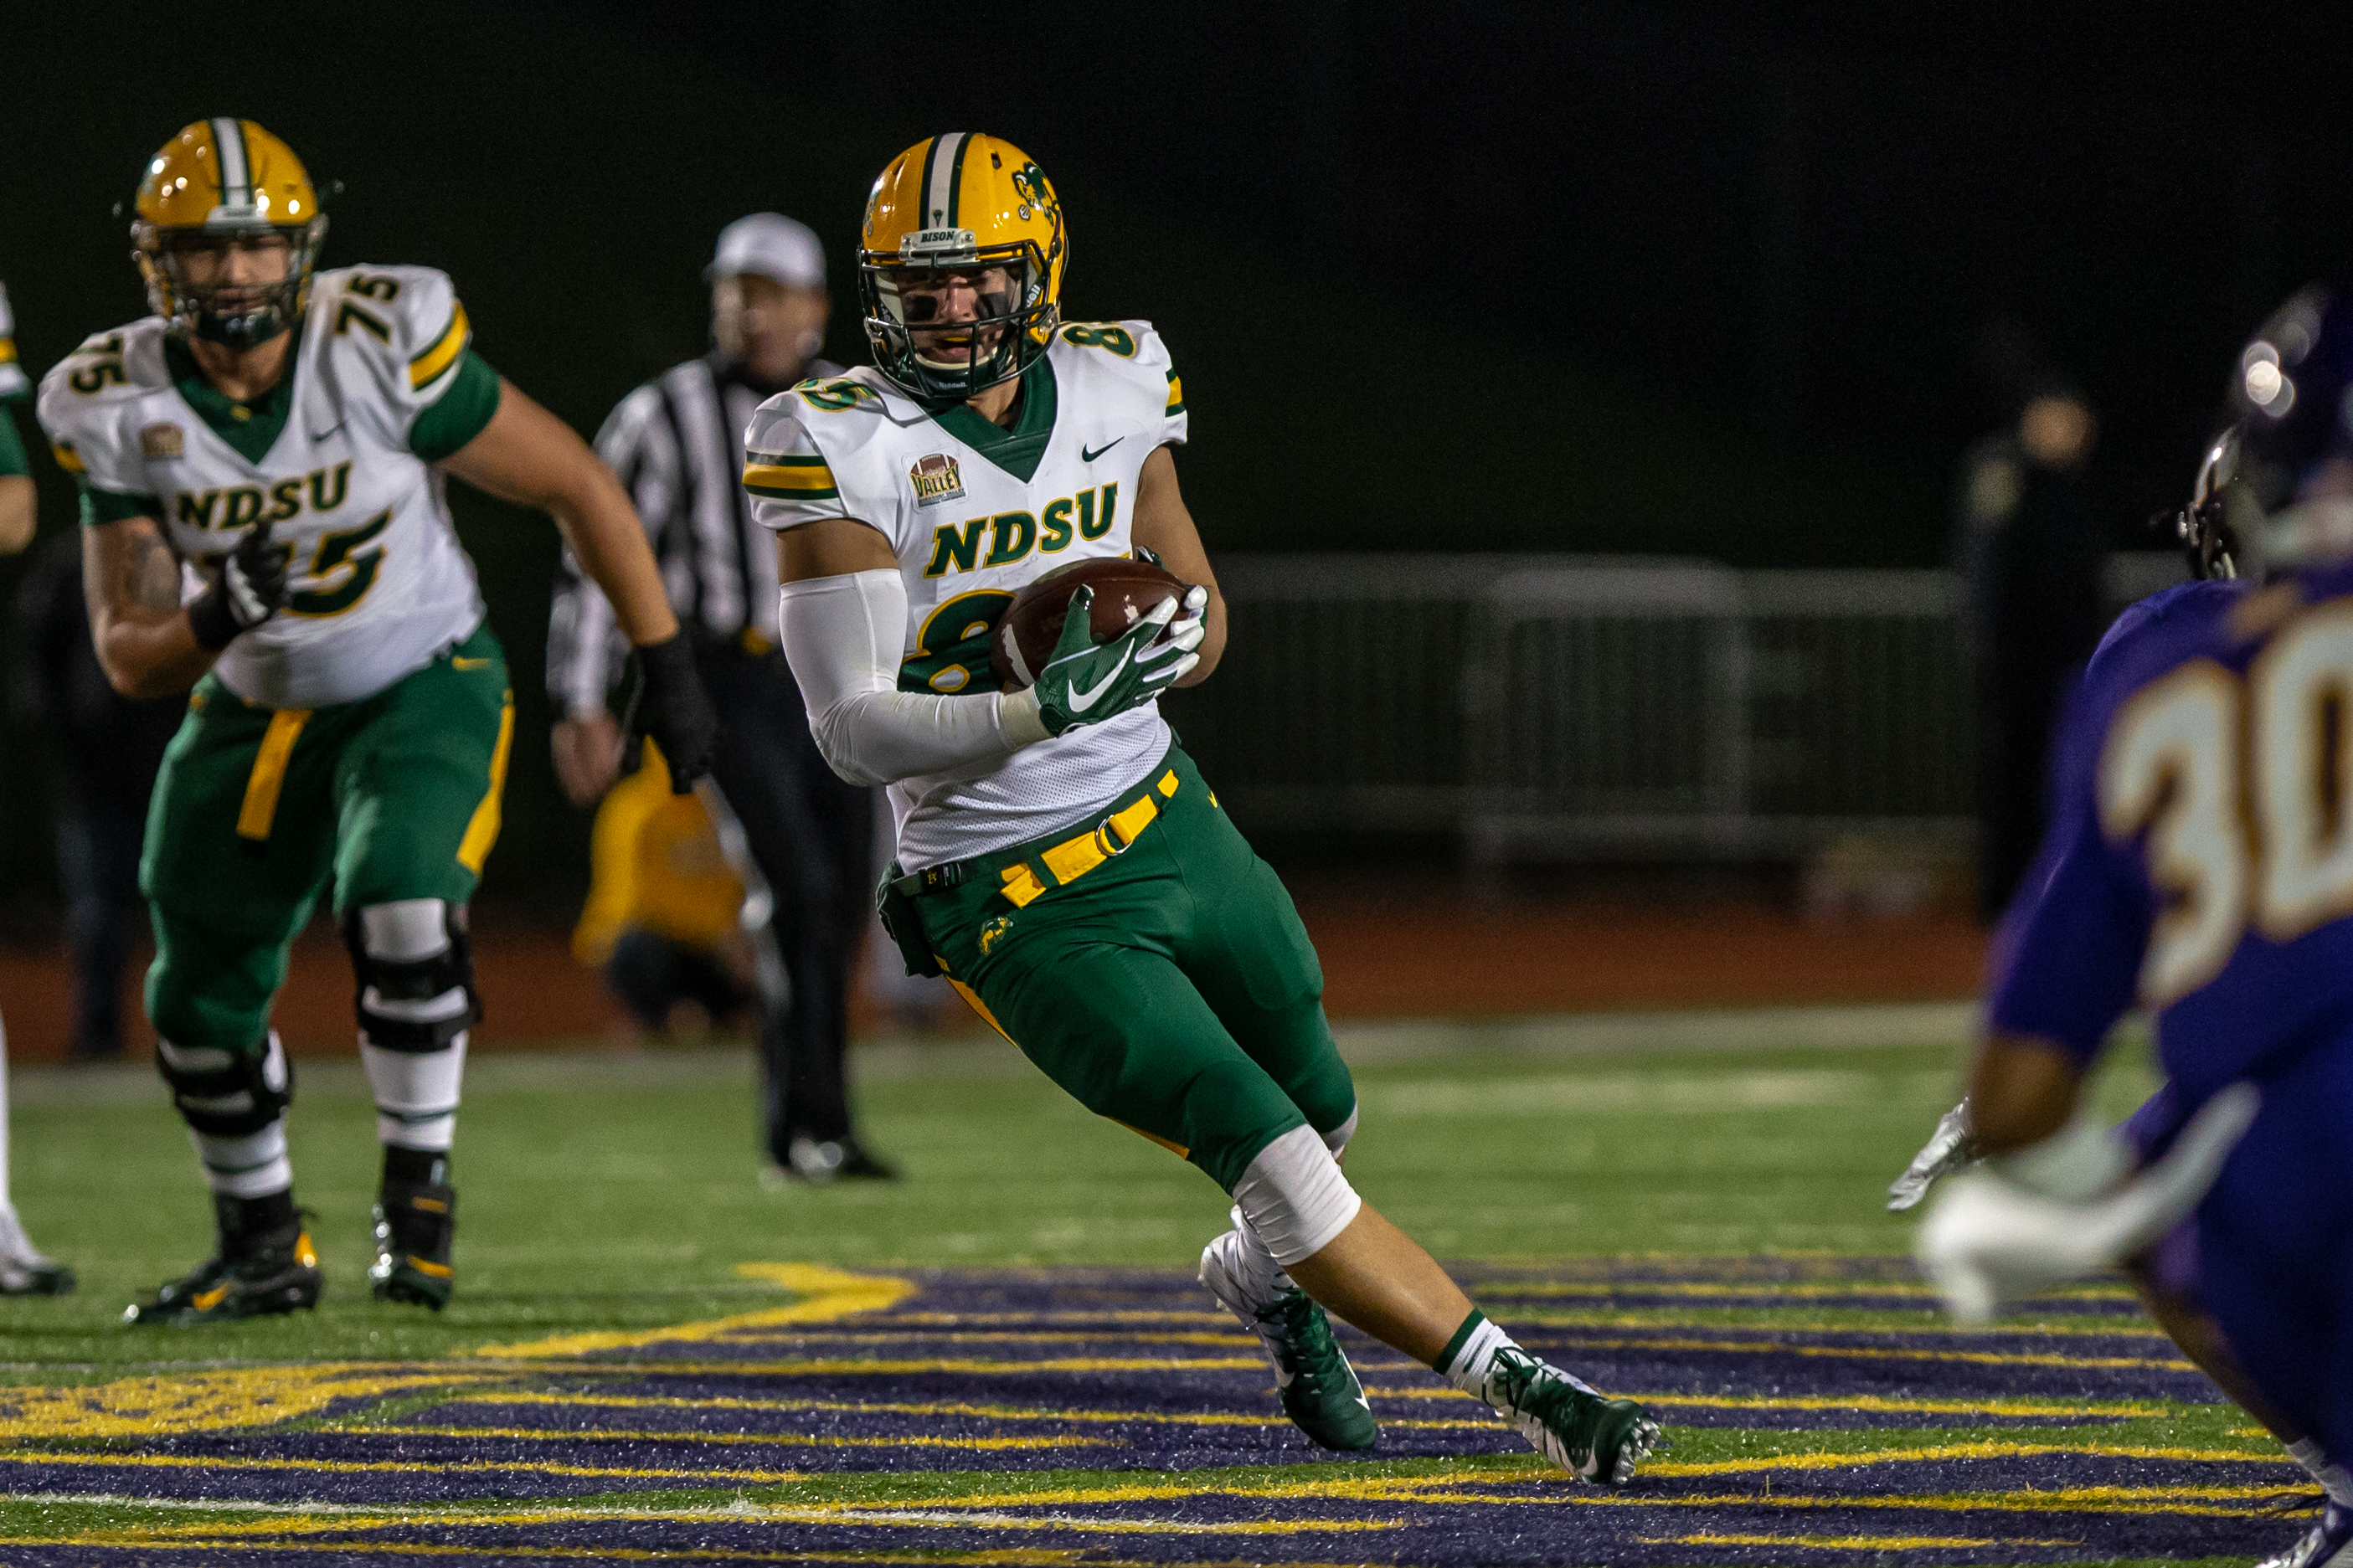 North Dakota State University Athletics - Nate Jenson - 2018 - North ... 3e68608f2